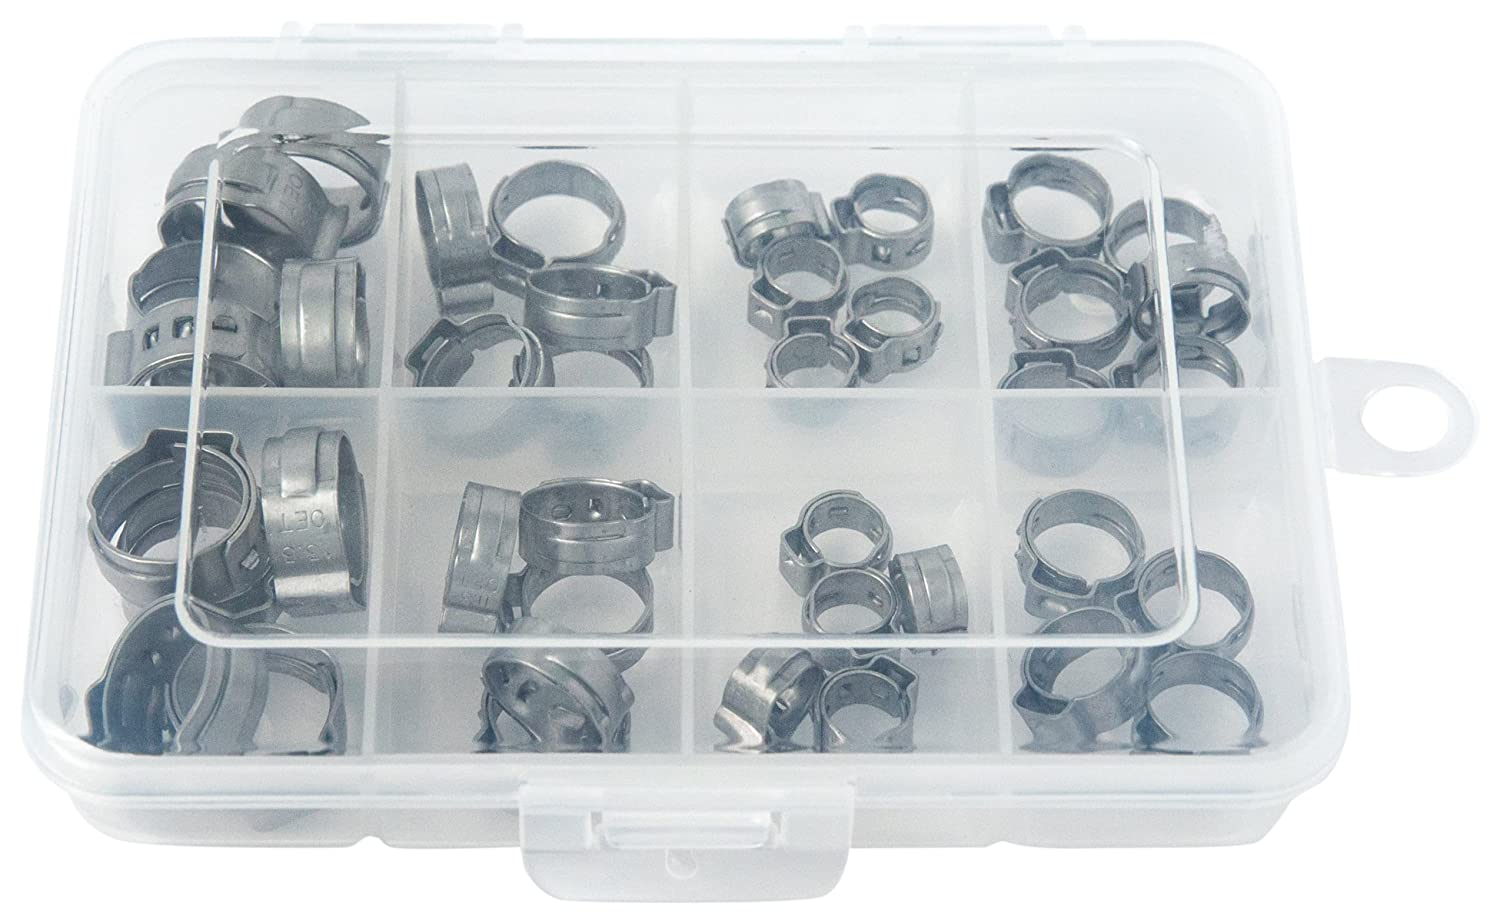 Single Ear Hose Clamps with Pincers Oetiker Stepless OET070170-300PCK-EP Clamp Assortment Case 1//4-11//16